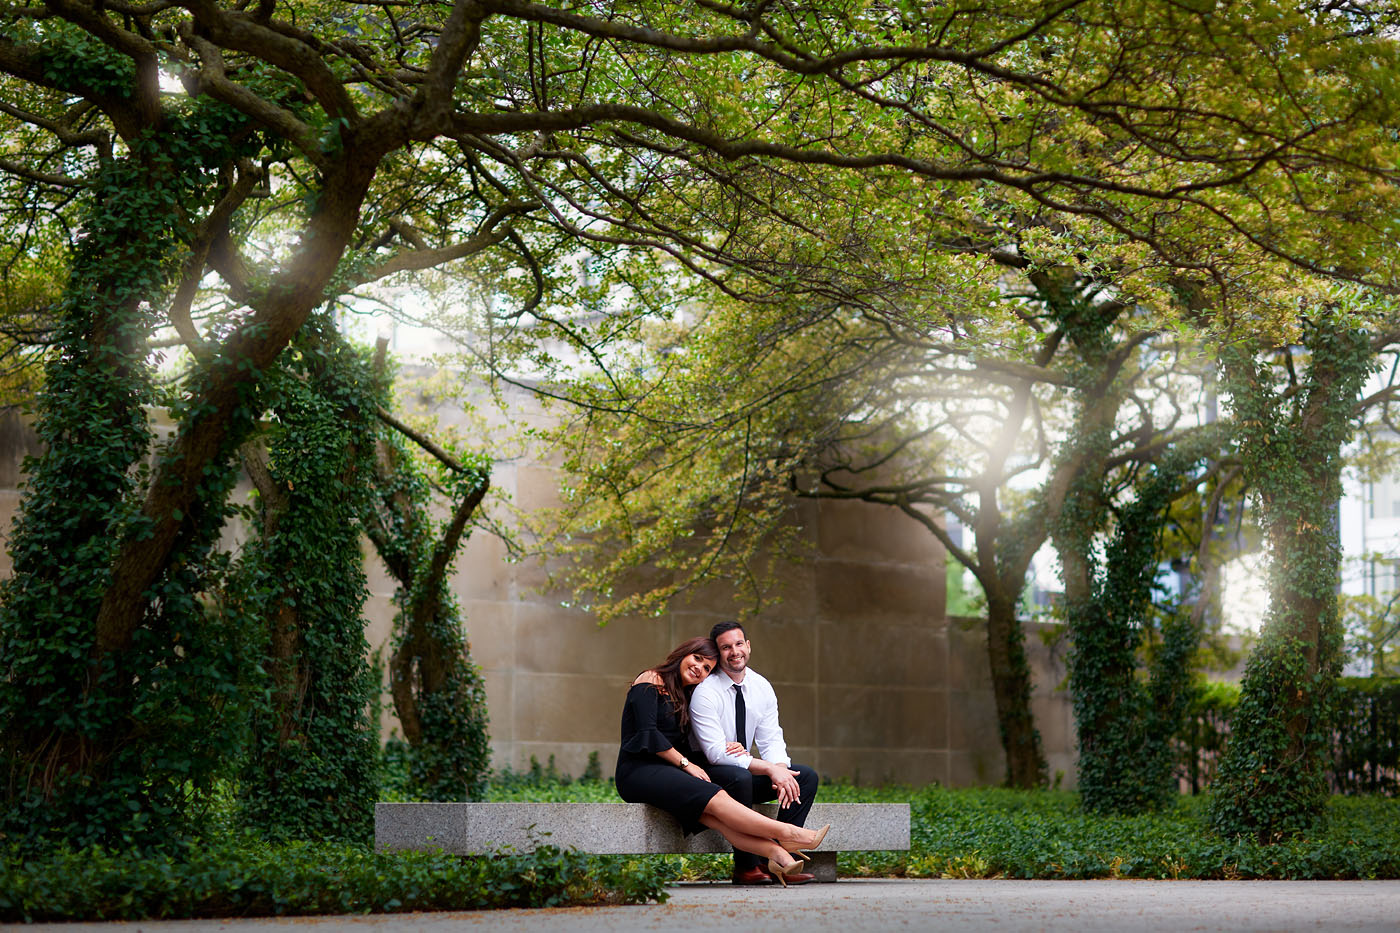 Cathy-Brian-Engagement-Session-09